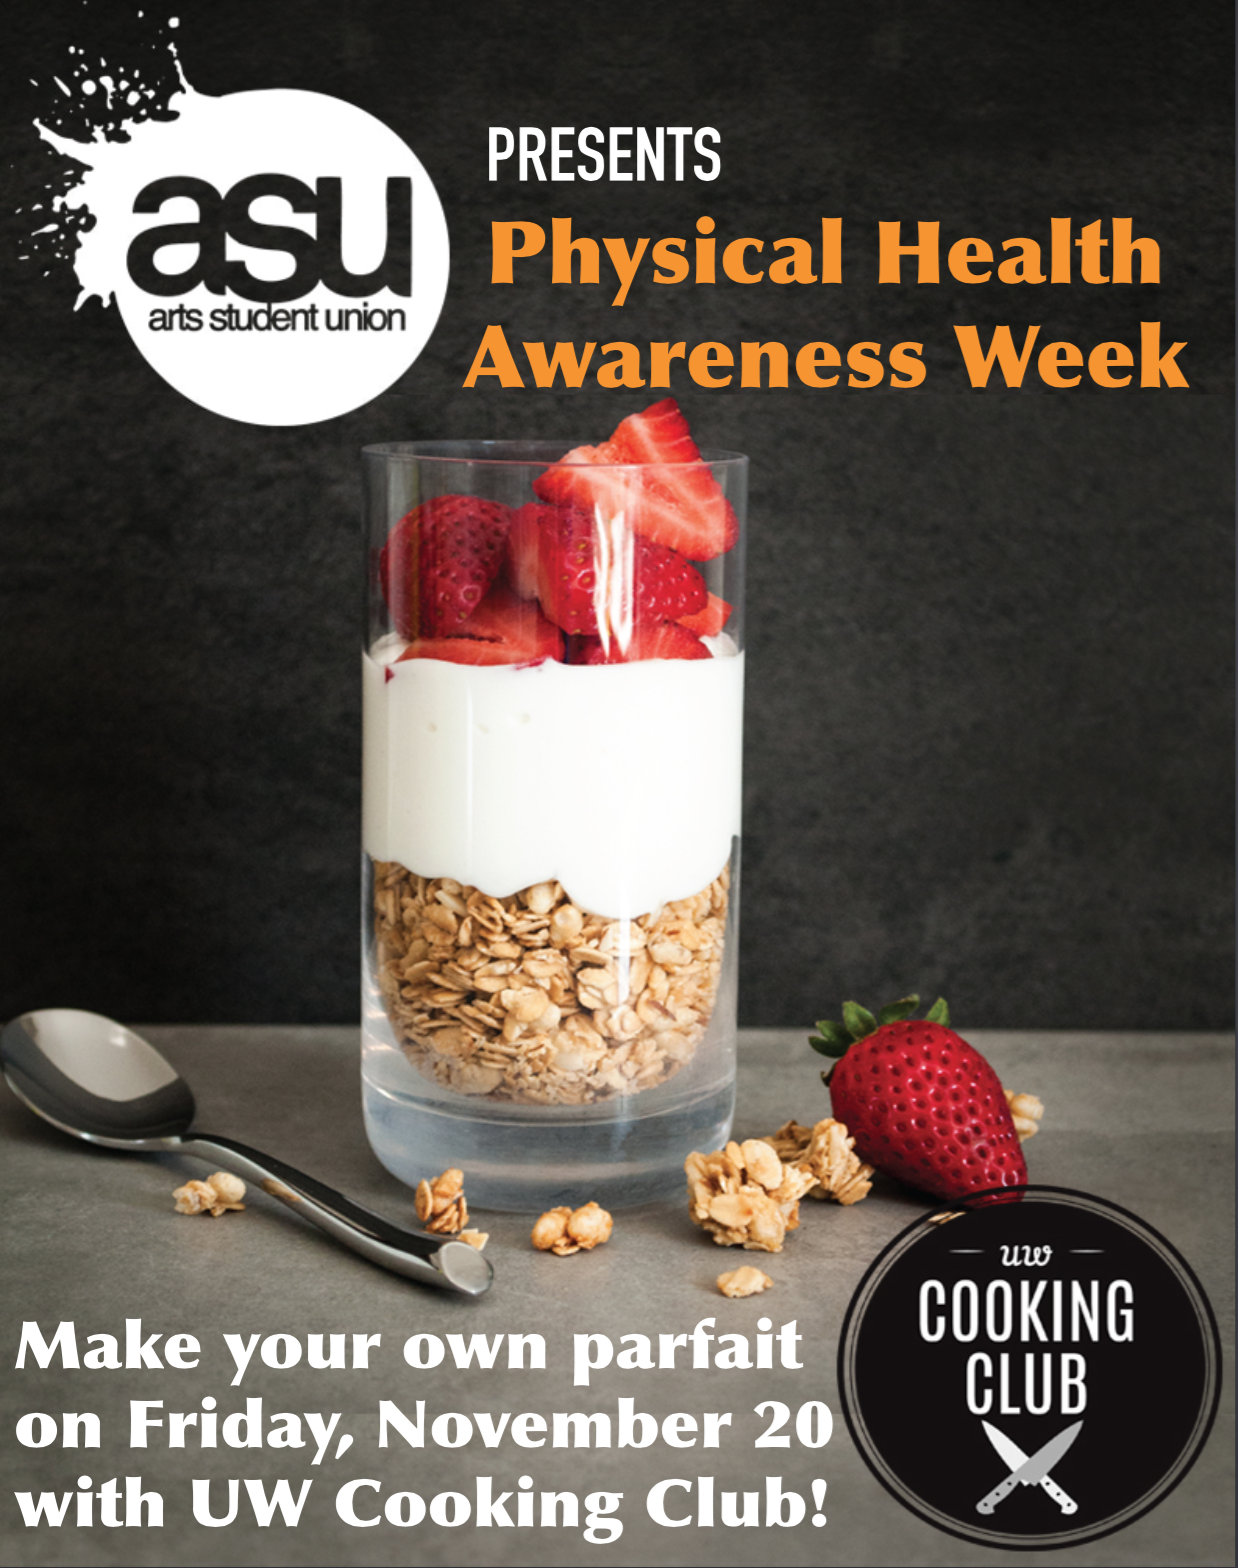 Arts Student Union Make Your Own Parfait Poster Displaying An Image Of A And Event